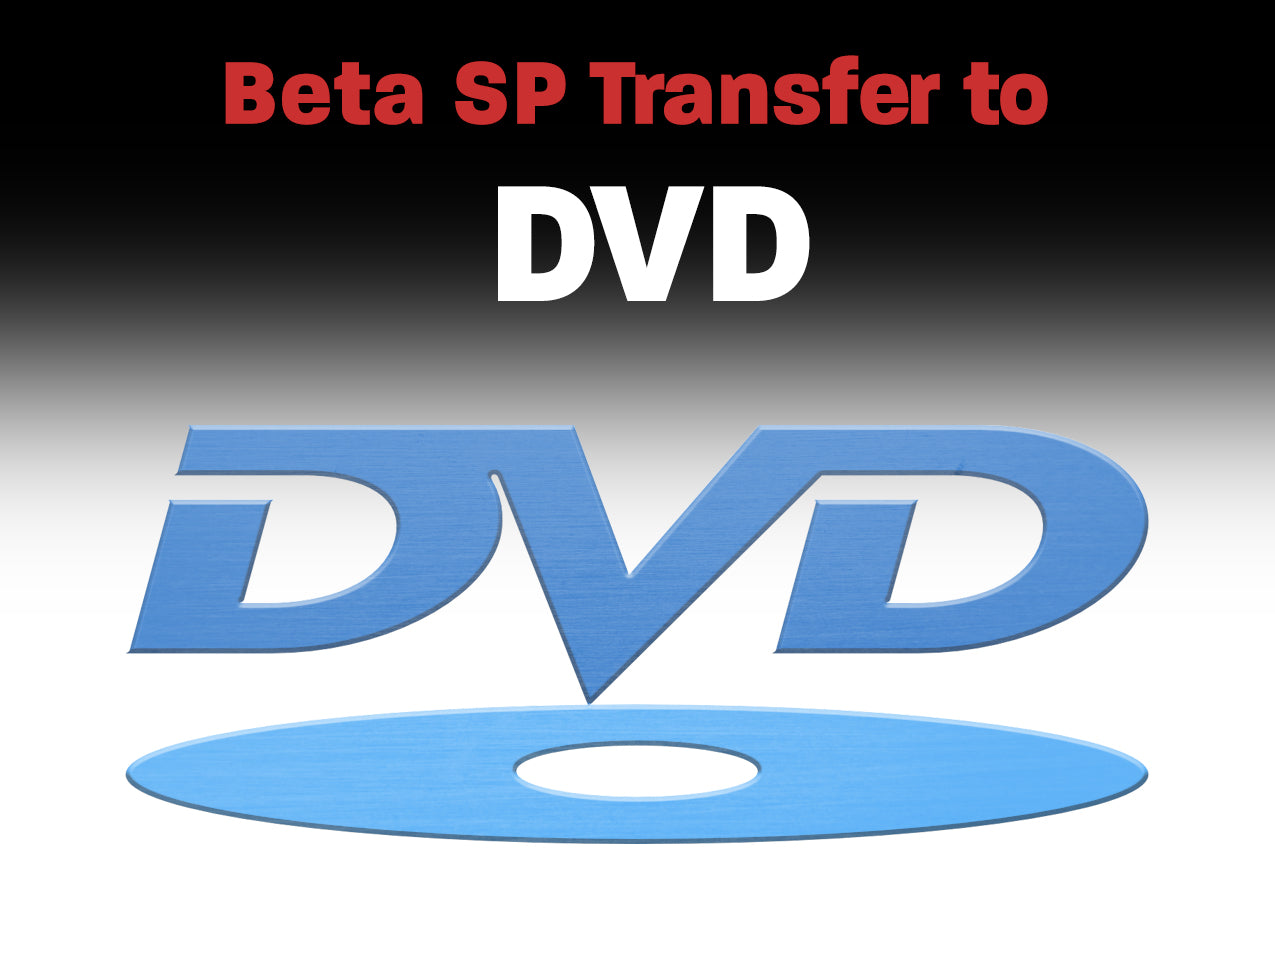 Betacam, Betacam SP to DVD